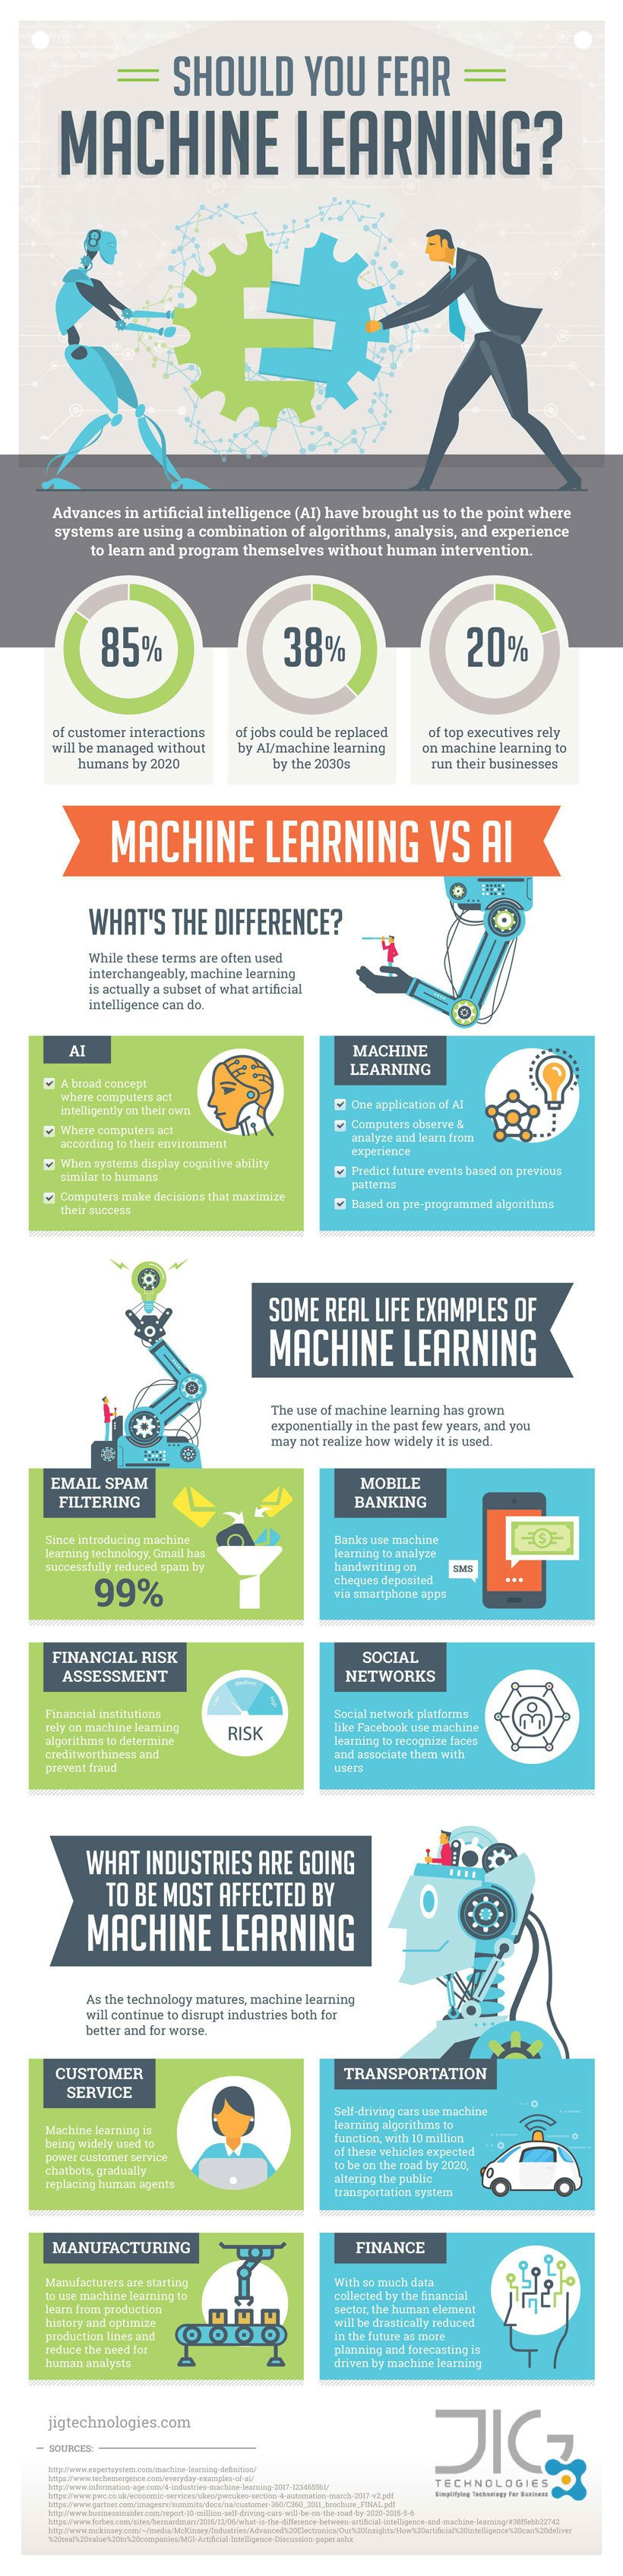 Should You Fear Machine Learning? Infographic